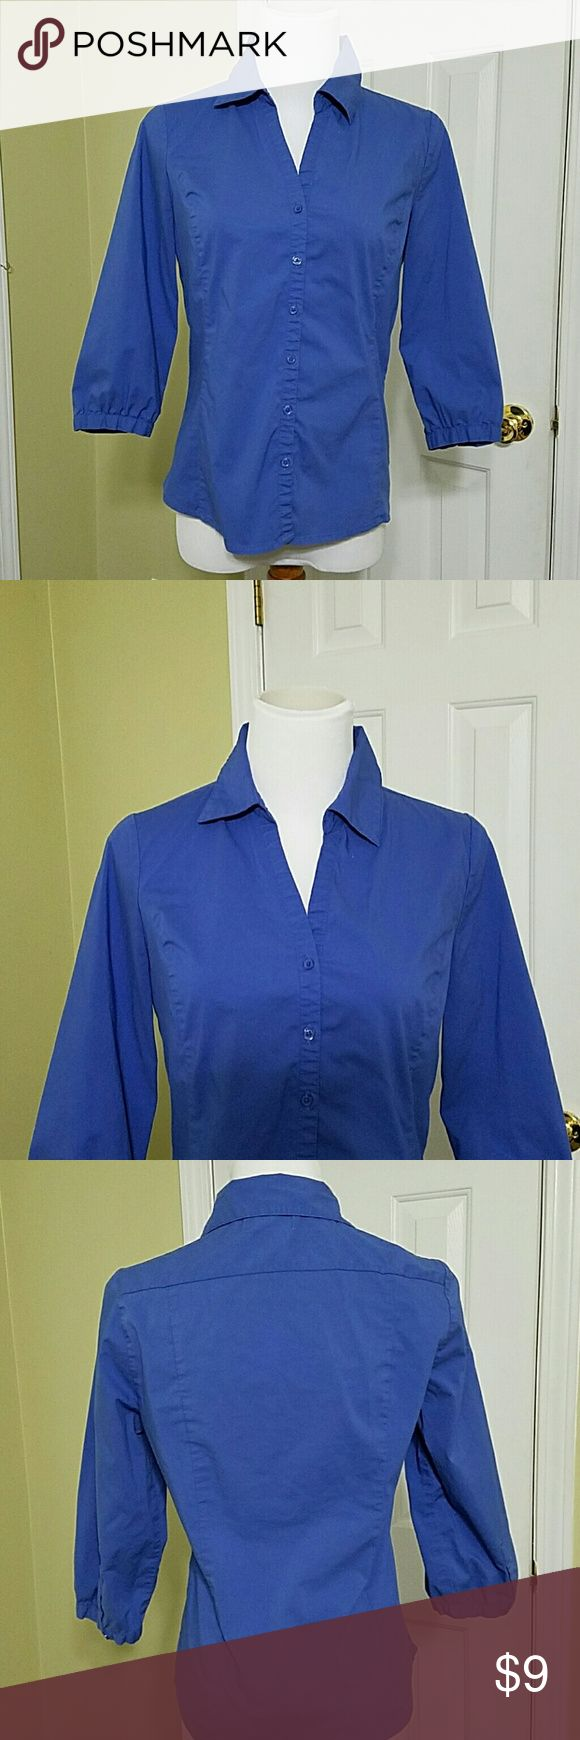 Old Navy perfect fit blue button up shirt Old Navy perfect fit blue button up shirt.  In good condition.  Length is about 22 inches.  Bust is about 35 inches.  Made of 62% cotton, 34% nylon, and 4% spandex. Old Navy Tops